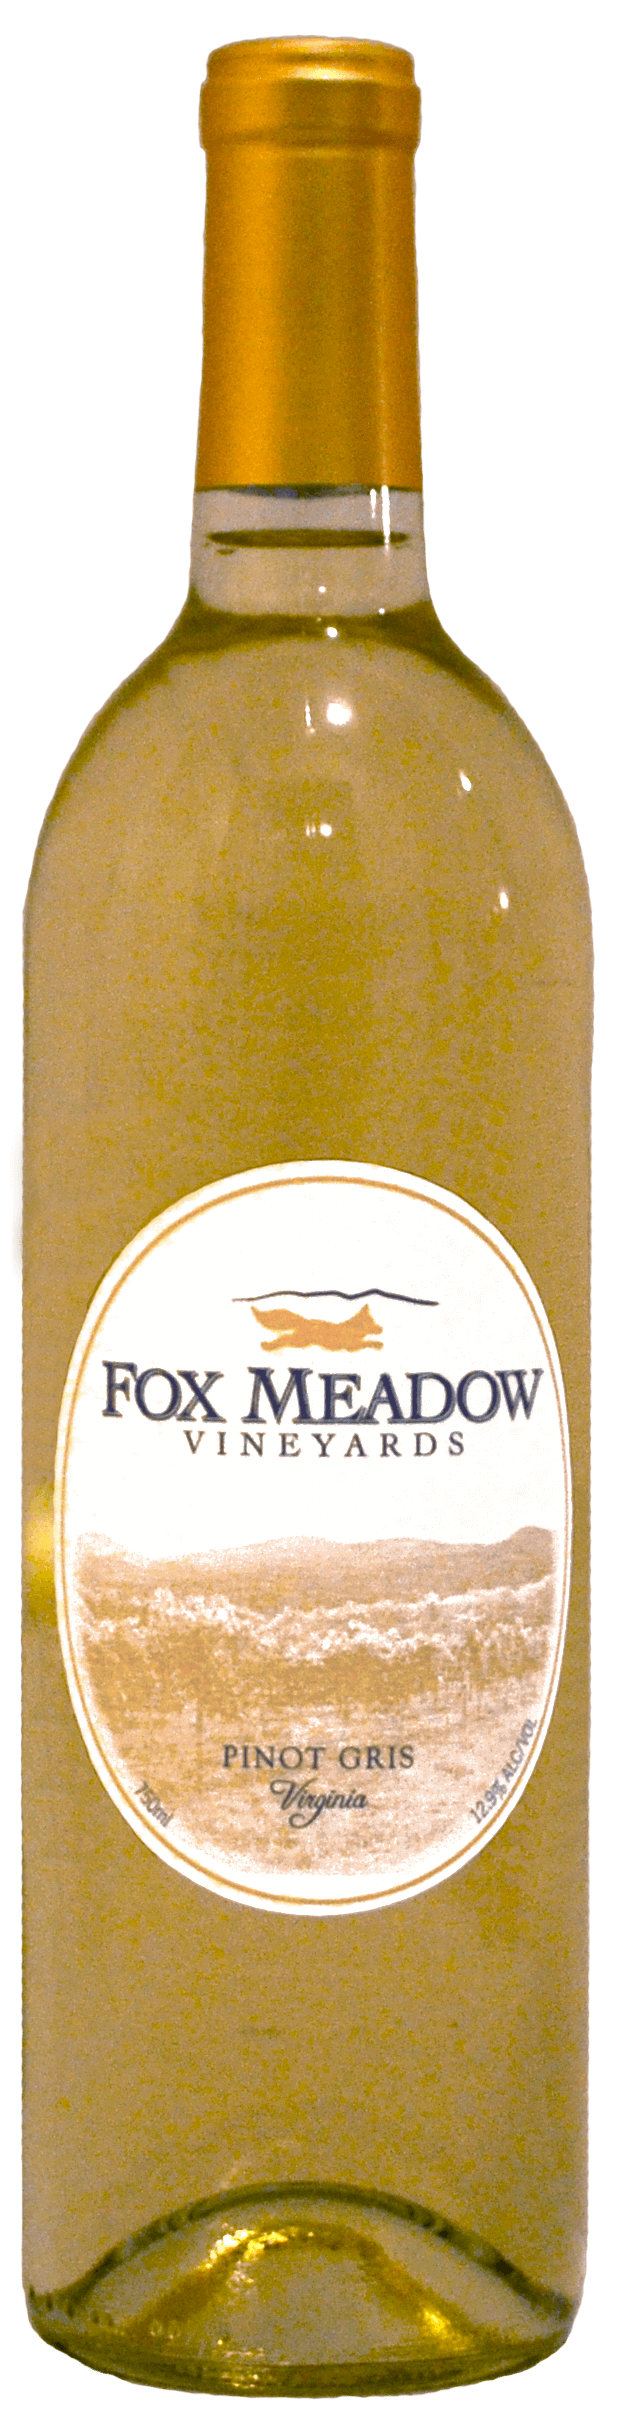 2017 FMV Pinot Gris Product Image